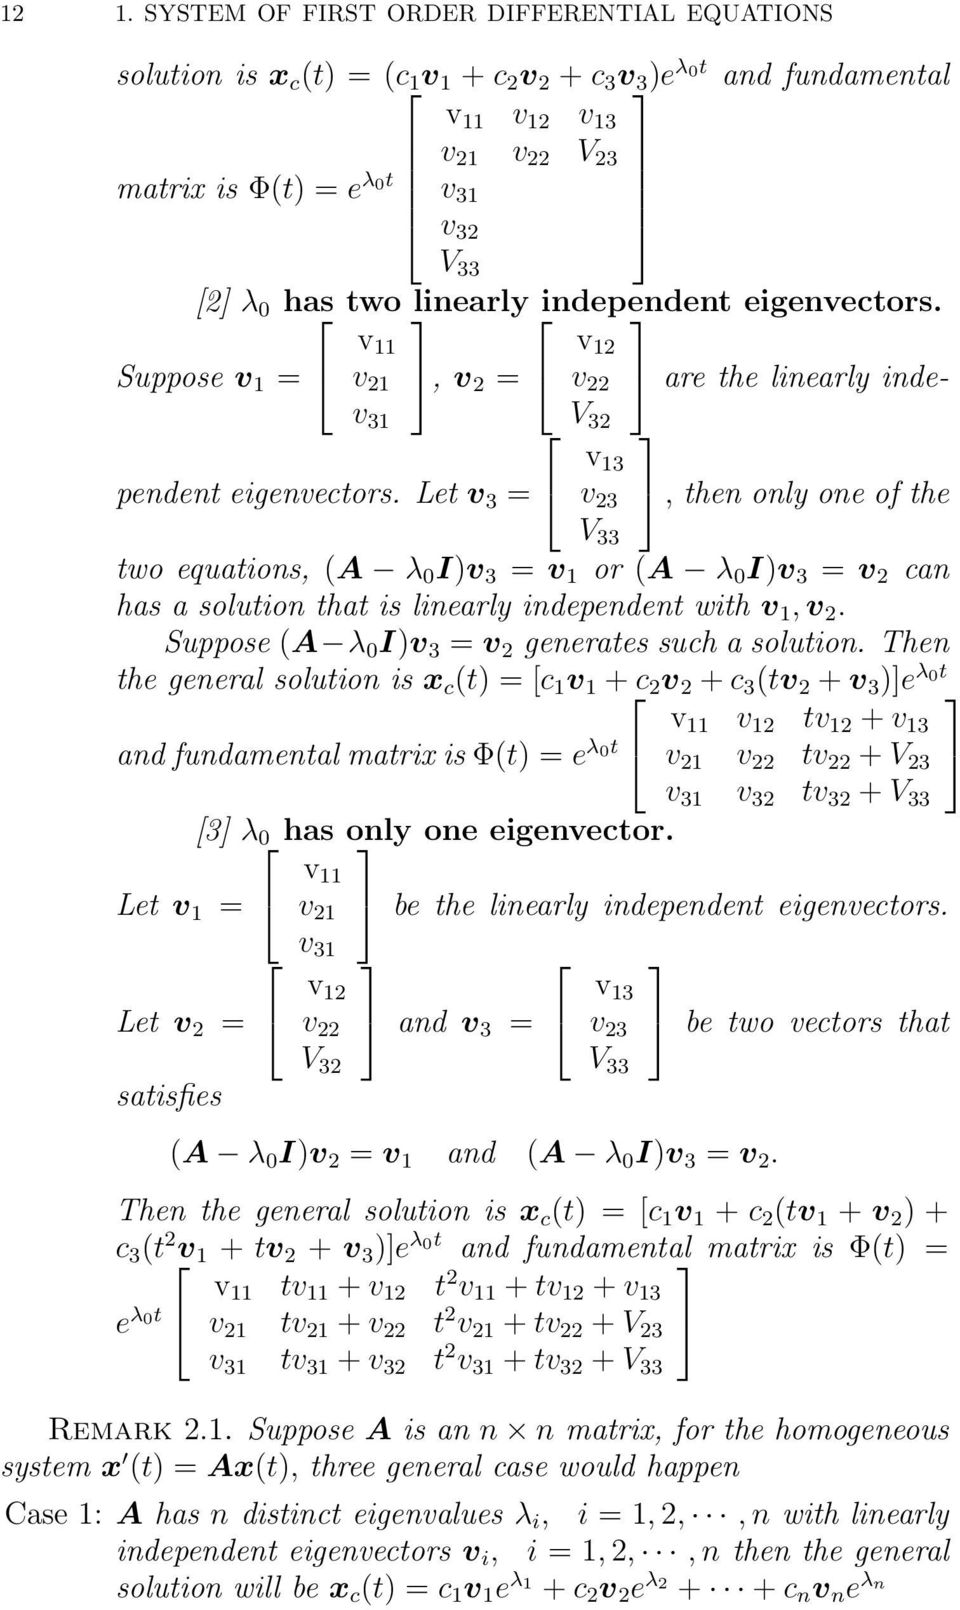 Let v 3 = v v 3 V 3 3 v 3, then only one of the two equations, (A λ I)v 3 = v or (A λ I)v 3 = v can has a solution that is linearly independent with v, v.